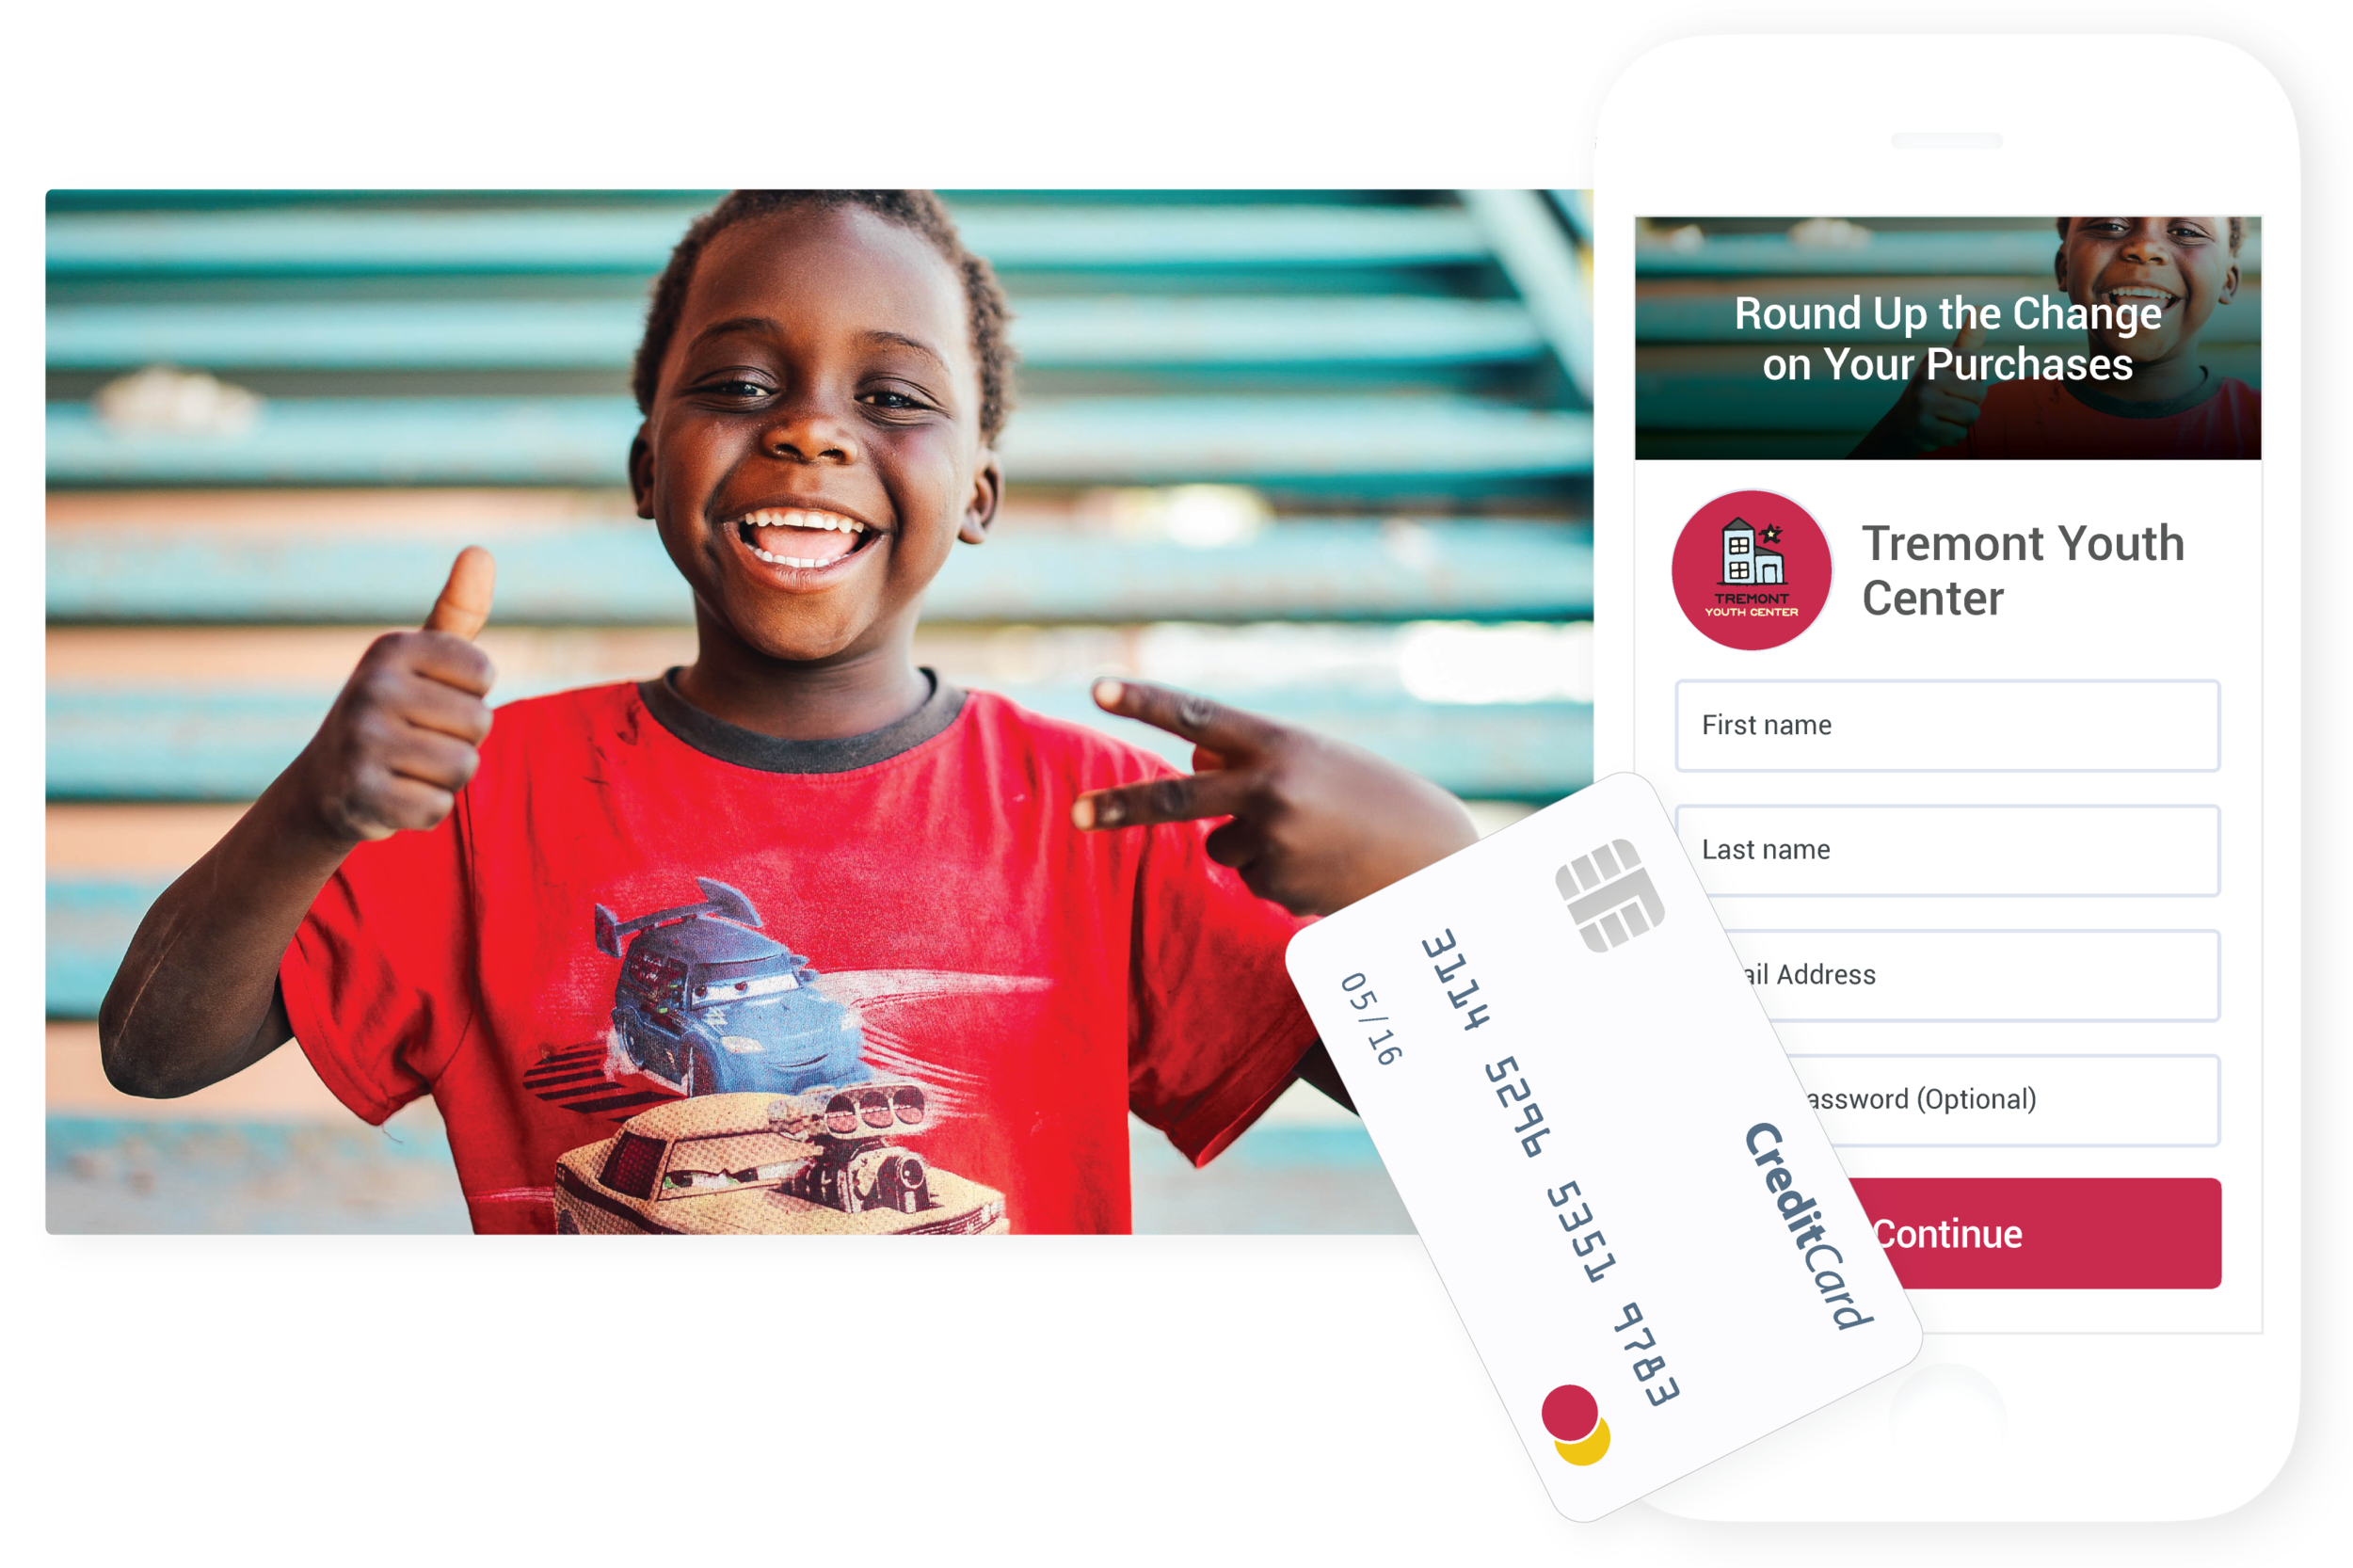 Spare Change - Invite donors to round up on their everyday purchases and donate the digital spare change